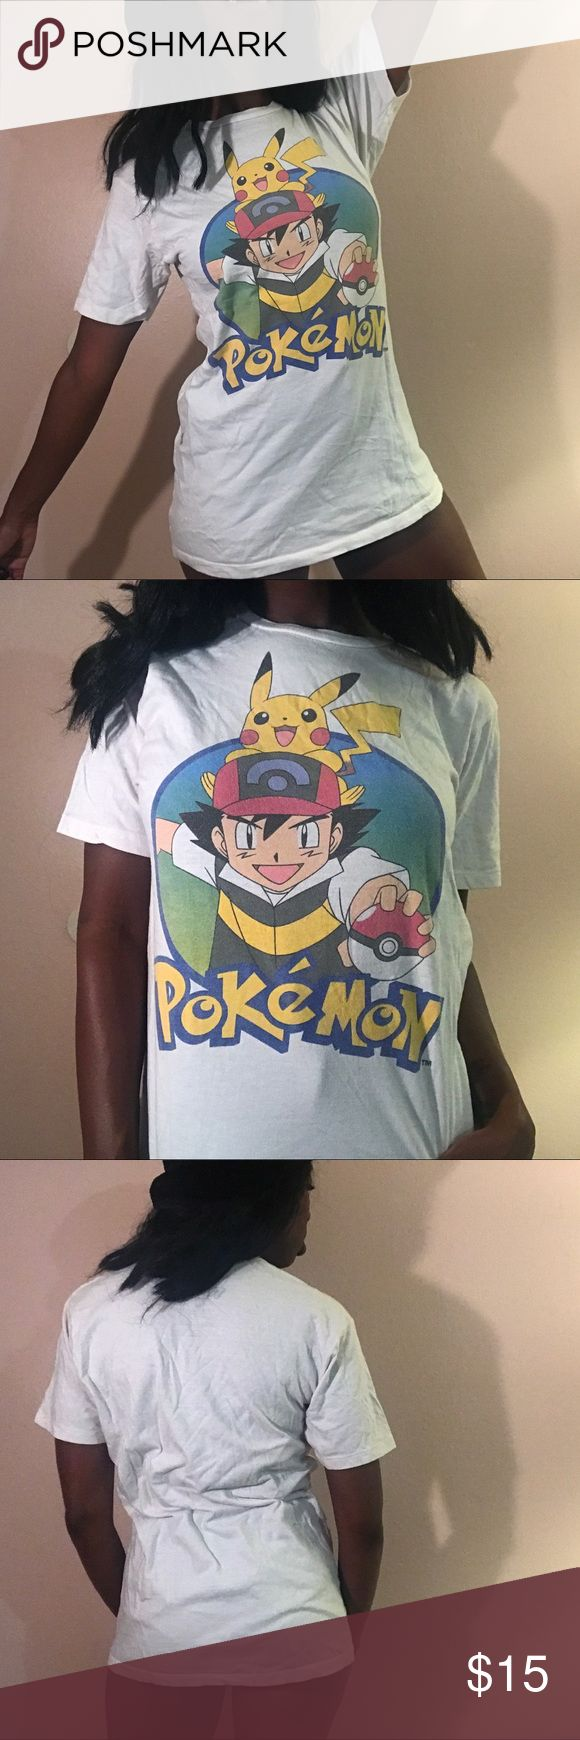 Pokémon tshirt medium ash pikachu Gotta catchem all!!! Awesome Pokémon tshirt. Size medium. A little faded but still colorful! DM TO PURCHASE!!! #pokemon #ash #pikachu #evolve #pokemongo #tvshow #cartoon #anime #kidsshow #adultshow #television #90s #90stv #shirt #t #blouse #unisex #clothing #forsale #vintage #retro #depop #poshmark #ebay #vinted #luxury #expensive #smallbusiness #blackowned #comiccon Shirts Tees - Short Sleeve